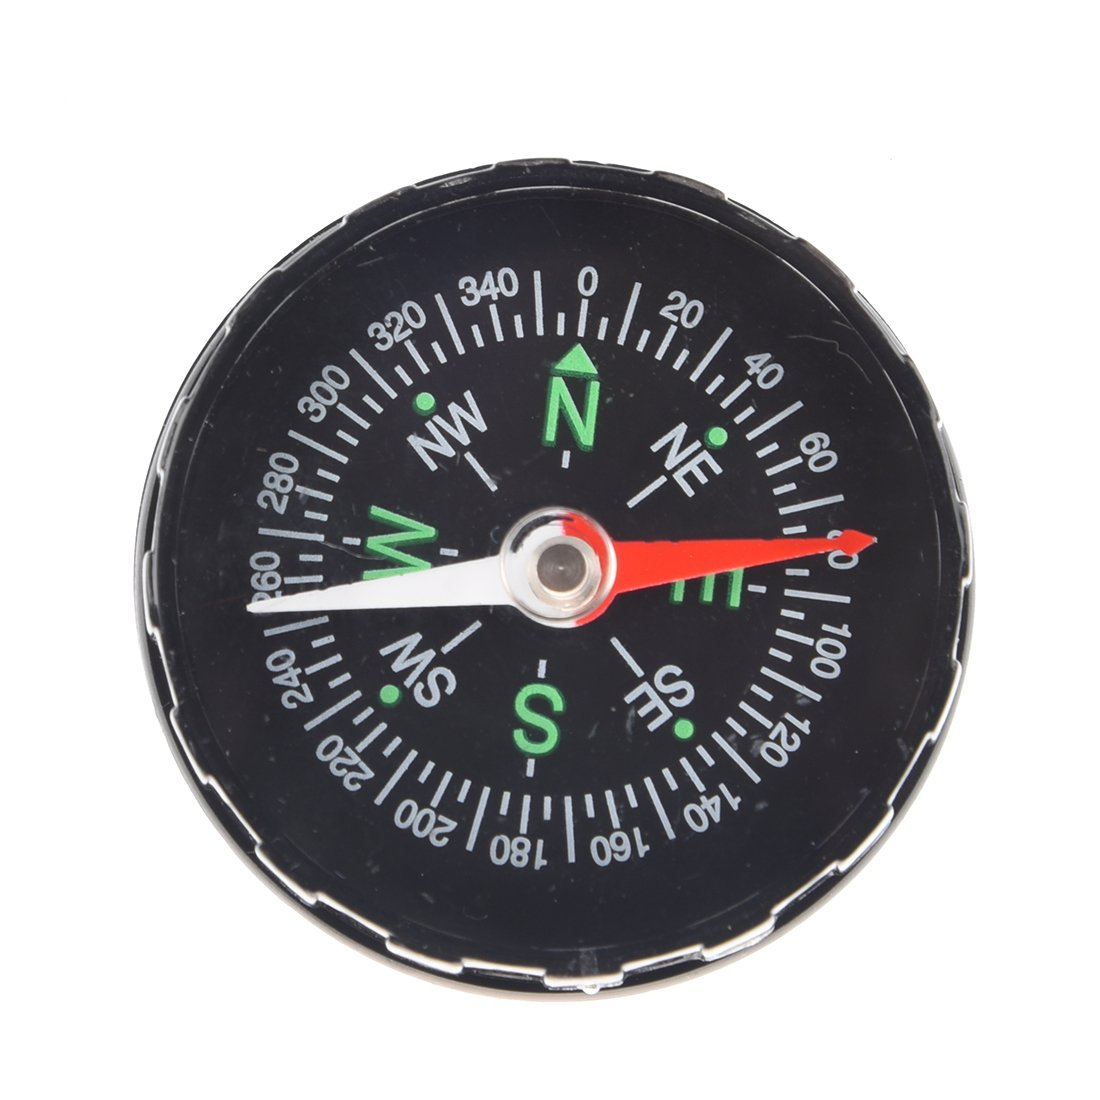 SODIAL(R) Black Oil Filled Compass Excellent for hiking, camping and outdoor